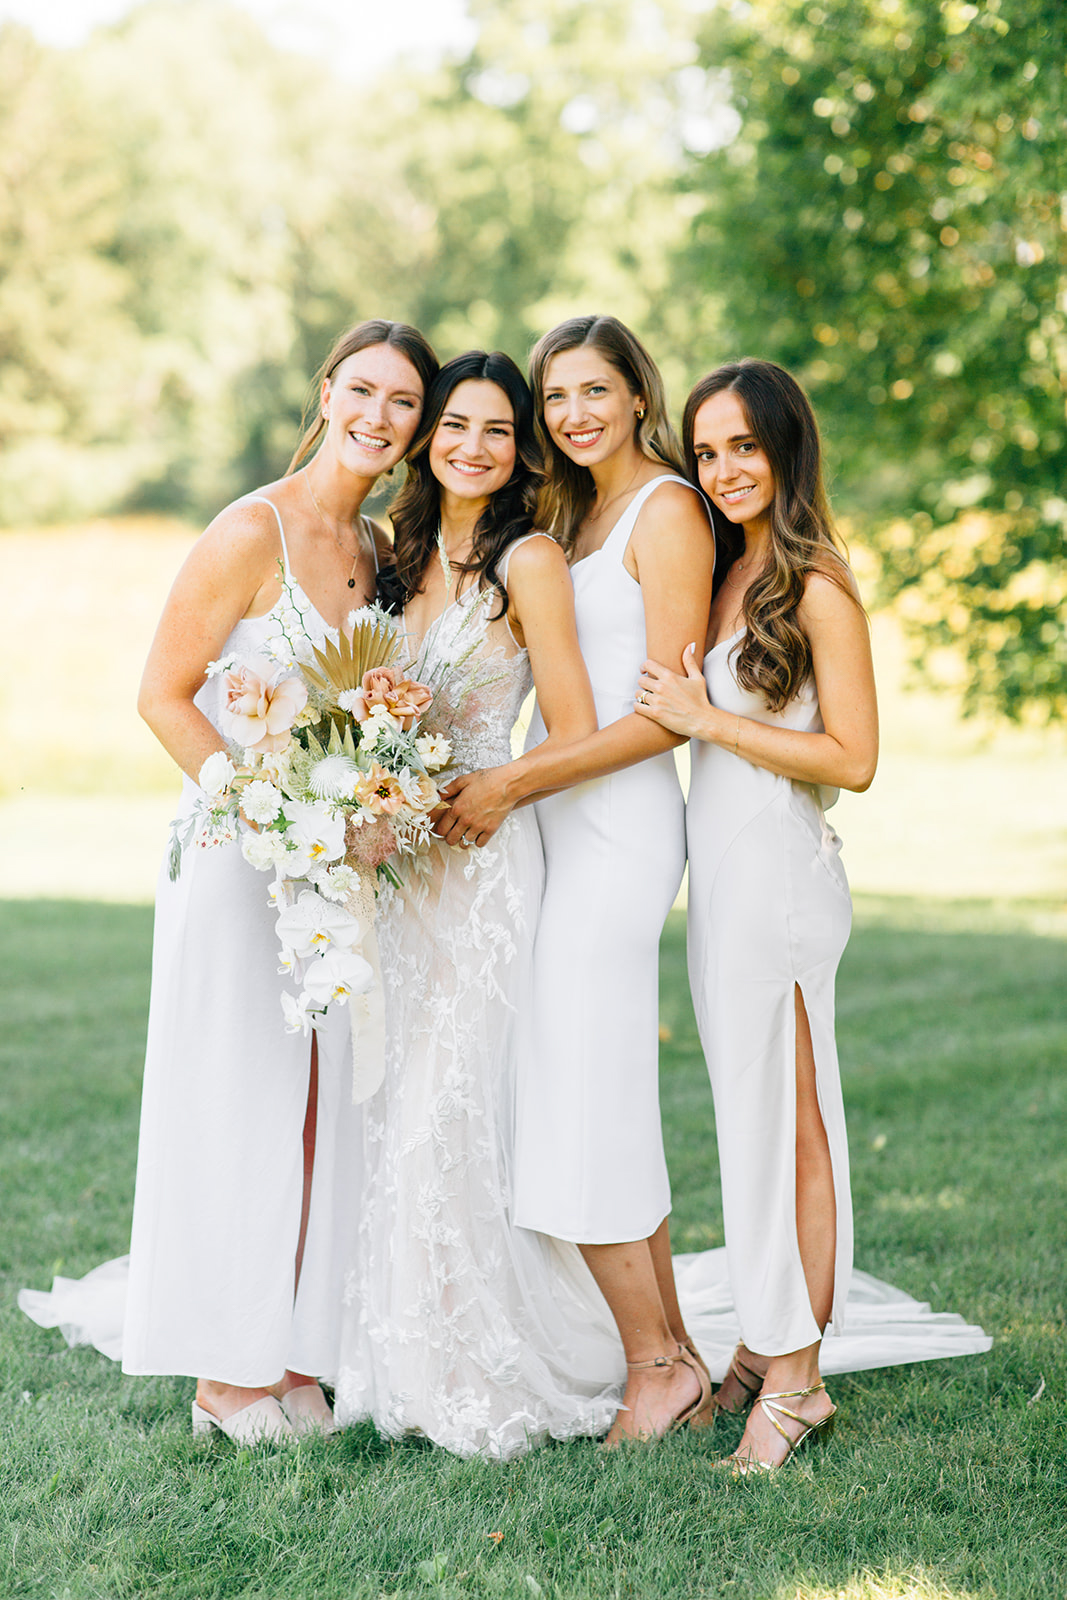 bride and bridesmaids in white dresses in outdoor